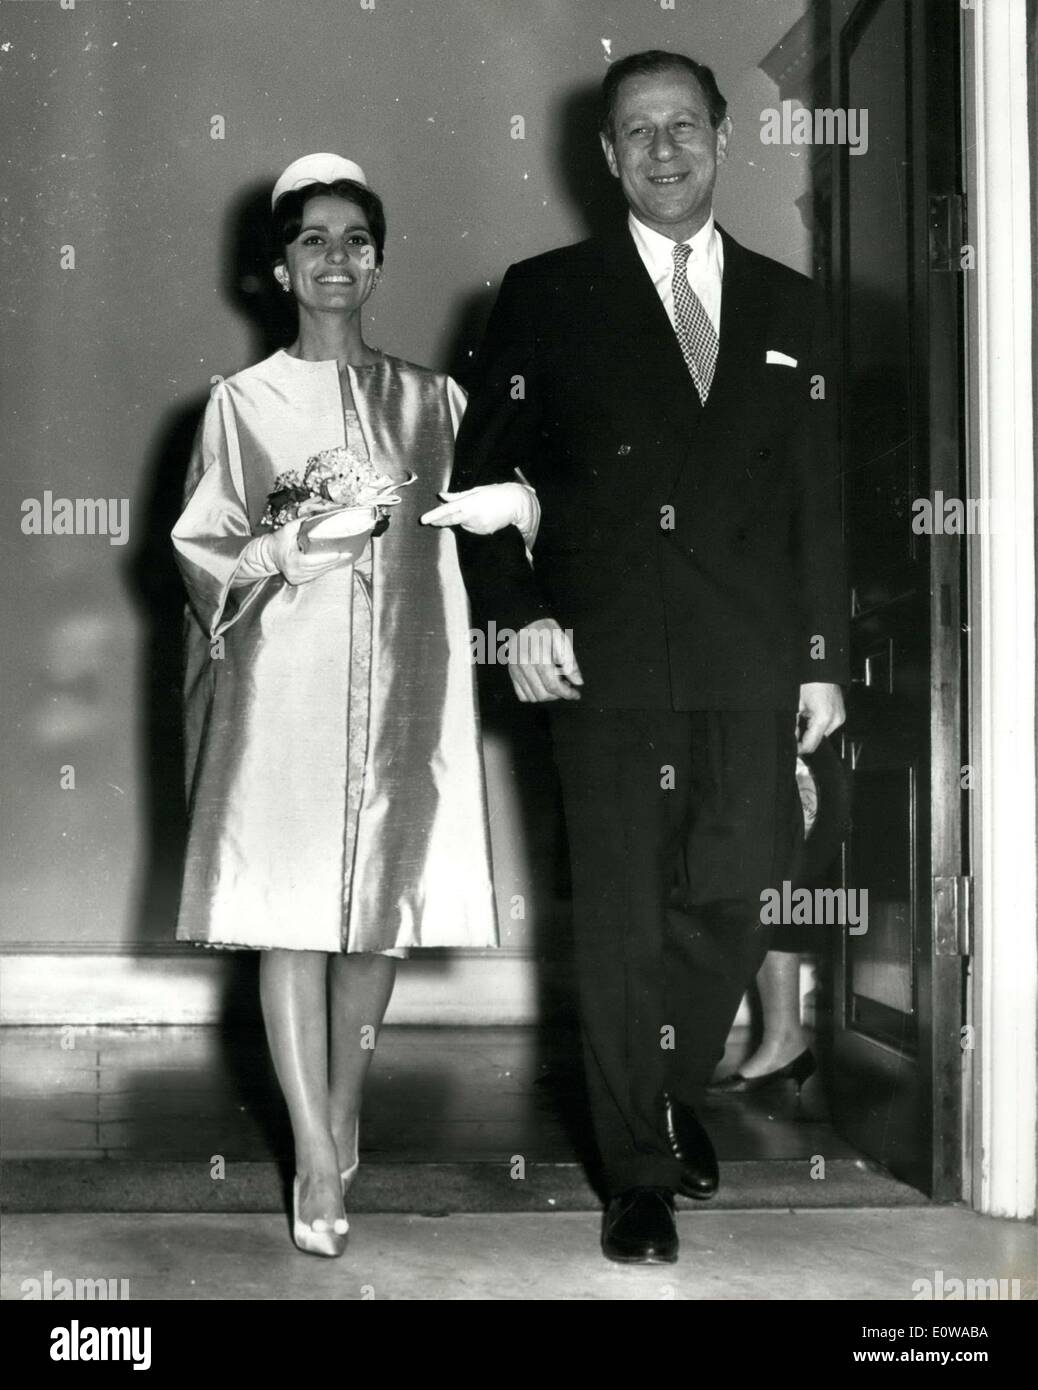 Mar. 15, 1962 - LABOUR MP MARRIES IRAQI HEIRESS: Harold Lever, 48, Labour MP for Manchester's Cheatham, Division, Stock Photo